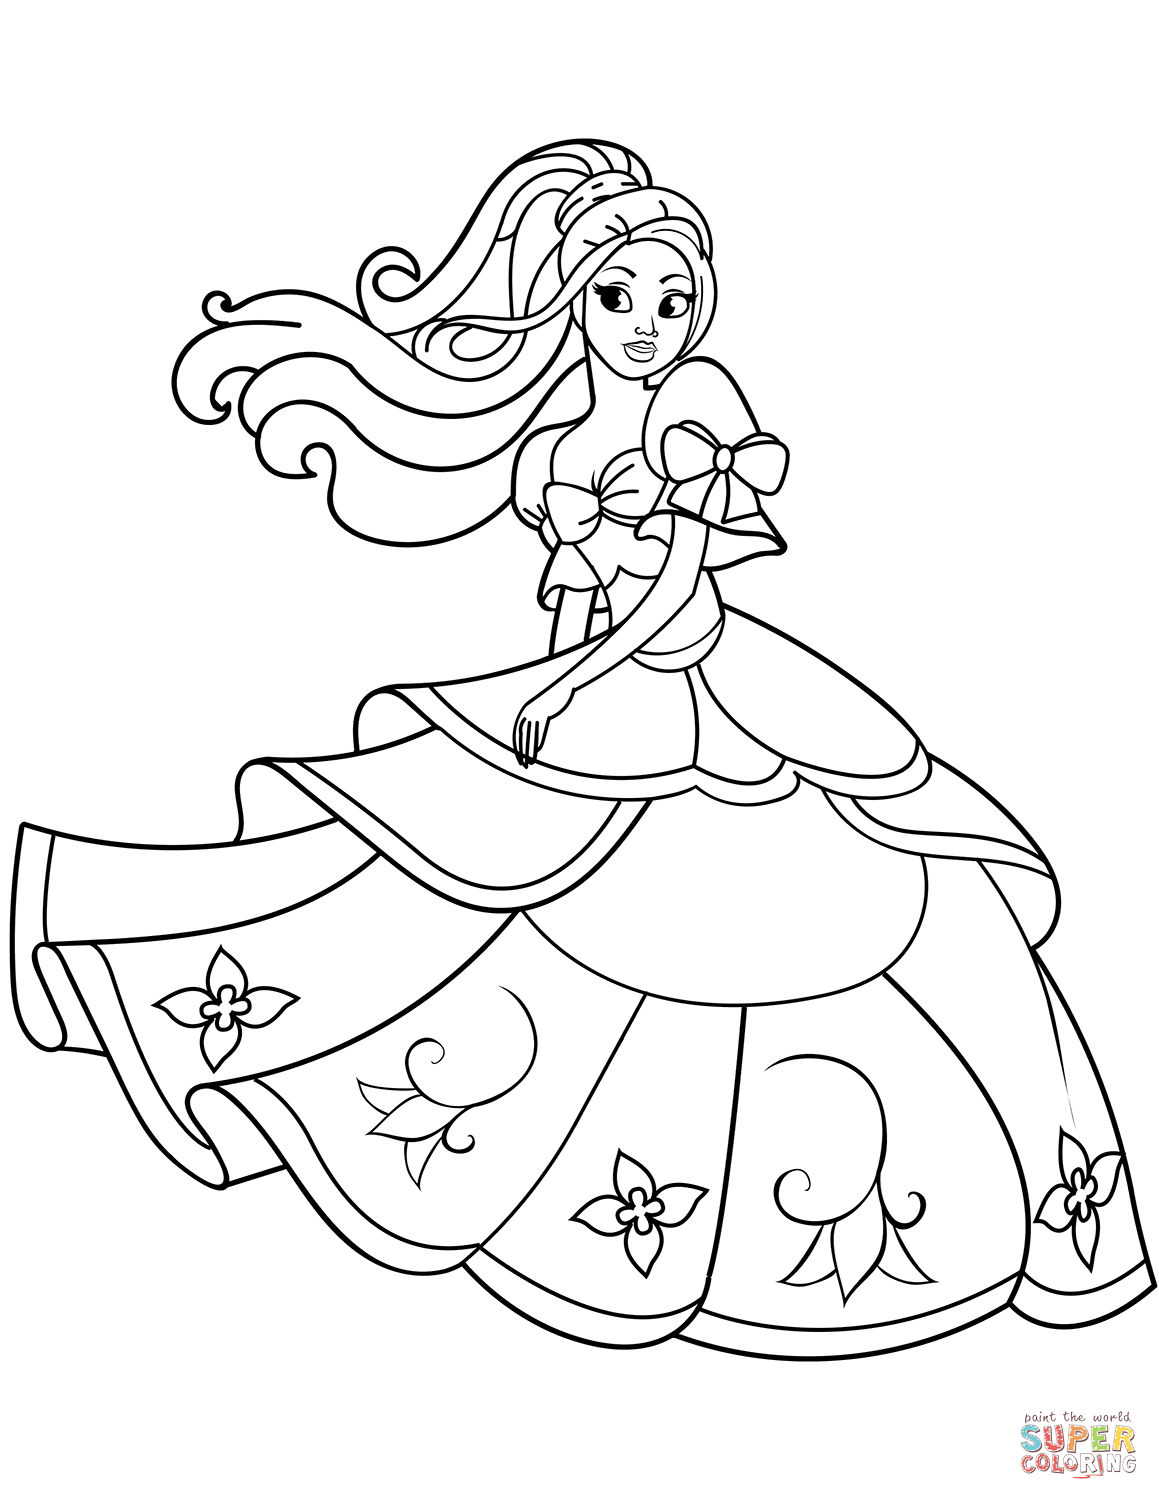 Dancing Princess Coloring Page